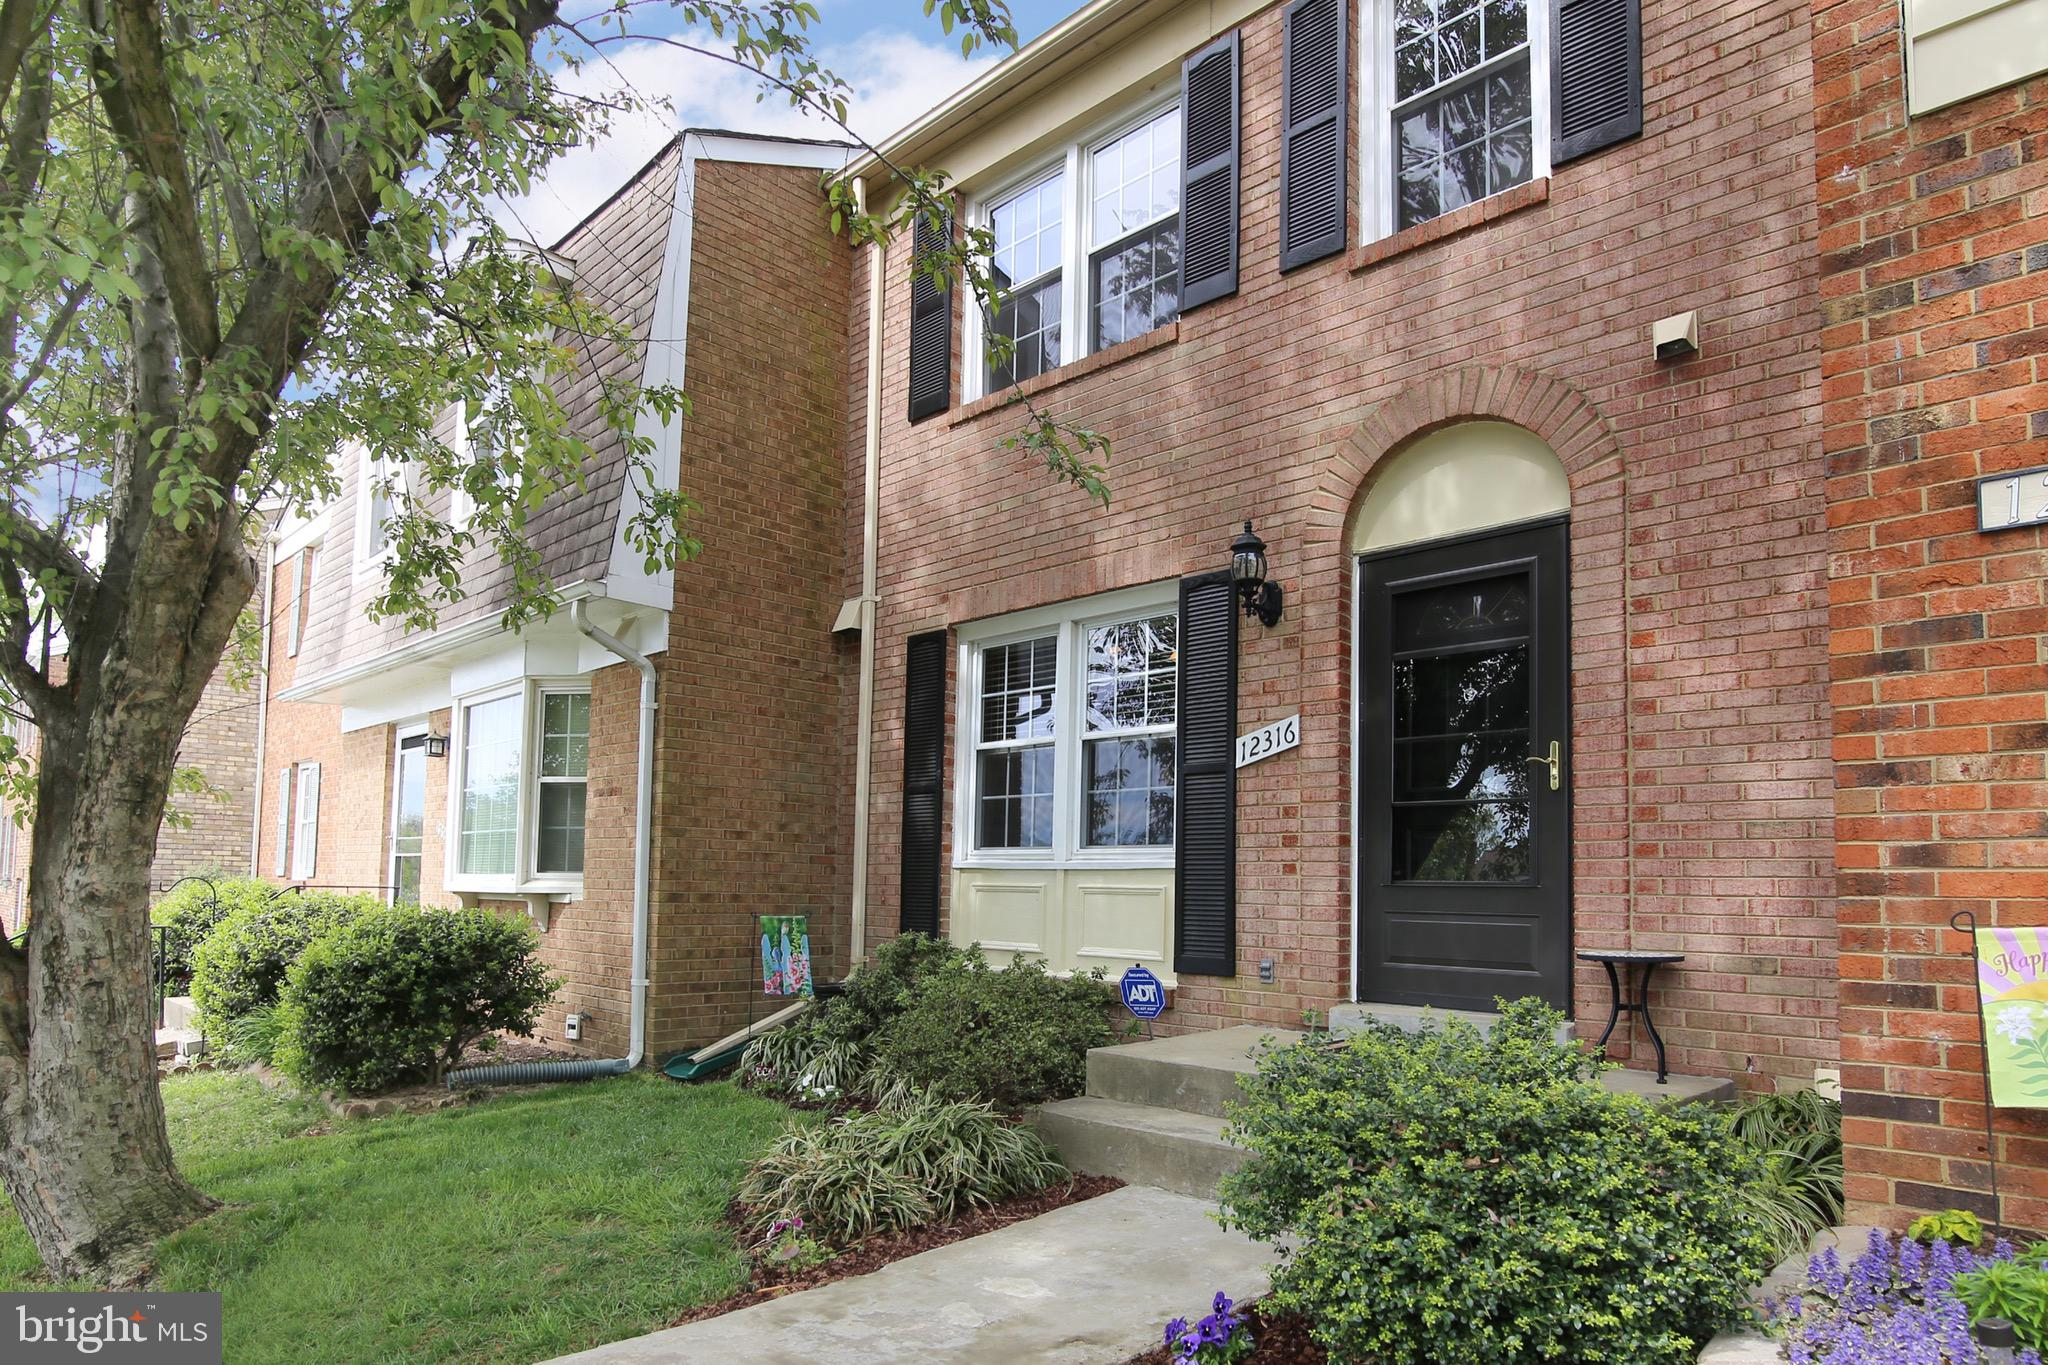 OPEN SUNDAY 1-3 PM! Updates Galore!! This immaculate townhouse has had all the major items done for you - new composite roof and siding (2017); new HVAC (2016); new washer and dryer (2018); new window coverings (2016); renovated kitchen with espresso 42in cabinets, double door pantry, granite counters and stainless steel appliances; updated bathrooms (2 full & 2 half), and hardwoods throughout the main level. You will love how the main level is open and flows from one room to another plus access to the fully fenced backyard with patio for entertaining. Upstairs boasts the master bedroom with a huge closet and ensuite, 2 bedrooms and a second full bathroom. The lower level features a cozy family/recreation room with its own half bath, separate laundry room and storage area. Altogether, this is a great home in wonderful Lake Ridge with its pools, boat ramp, sports fields/courts and tot lots. Close to schools, shops, restaurants and commuting routes. This gem won~t last!